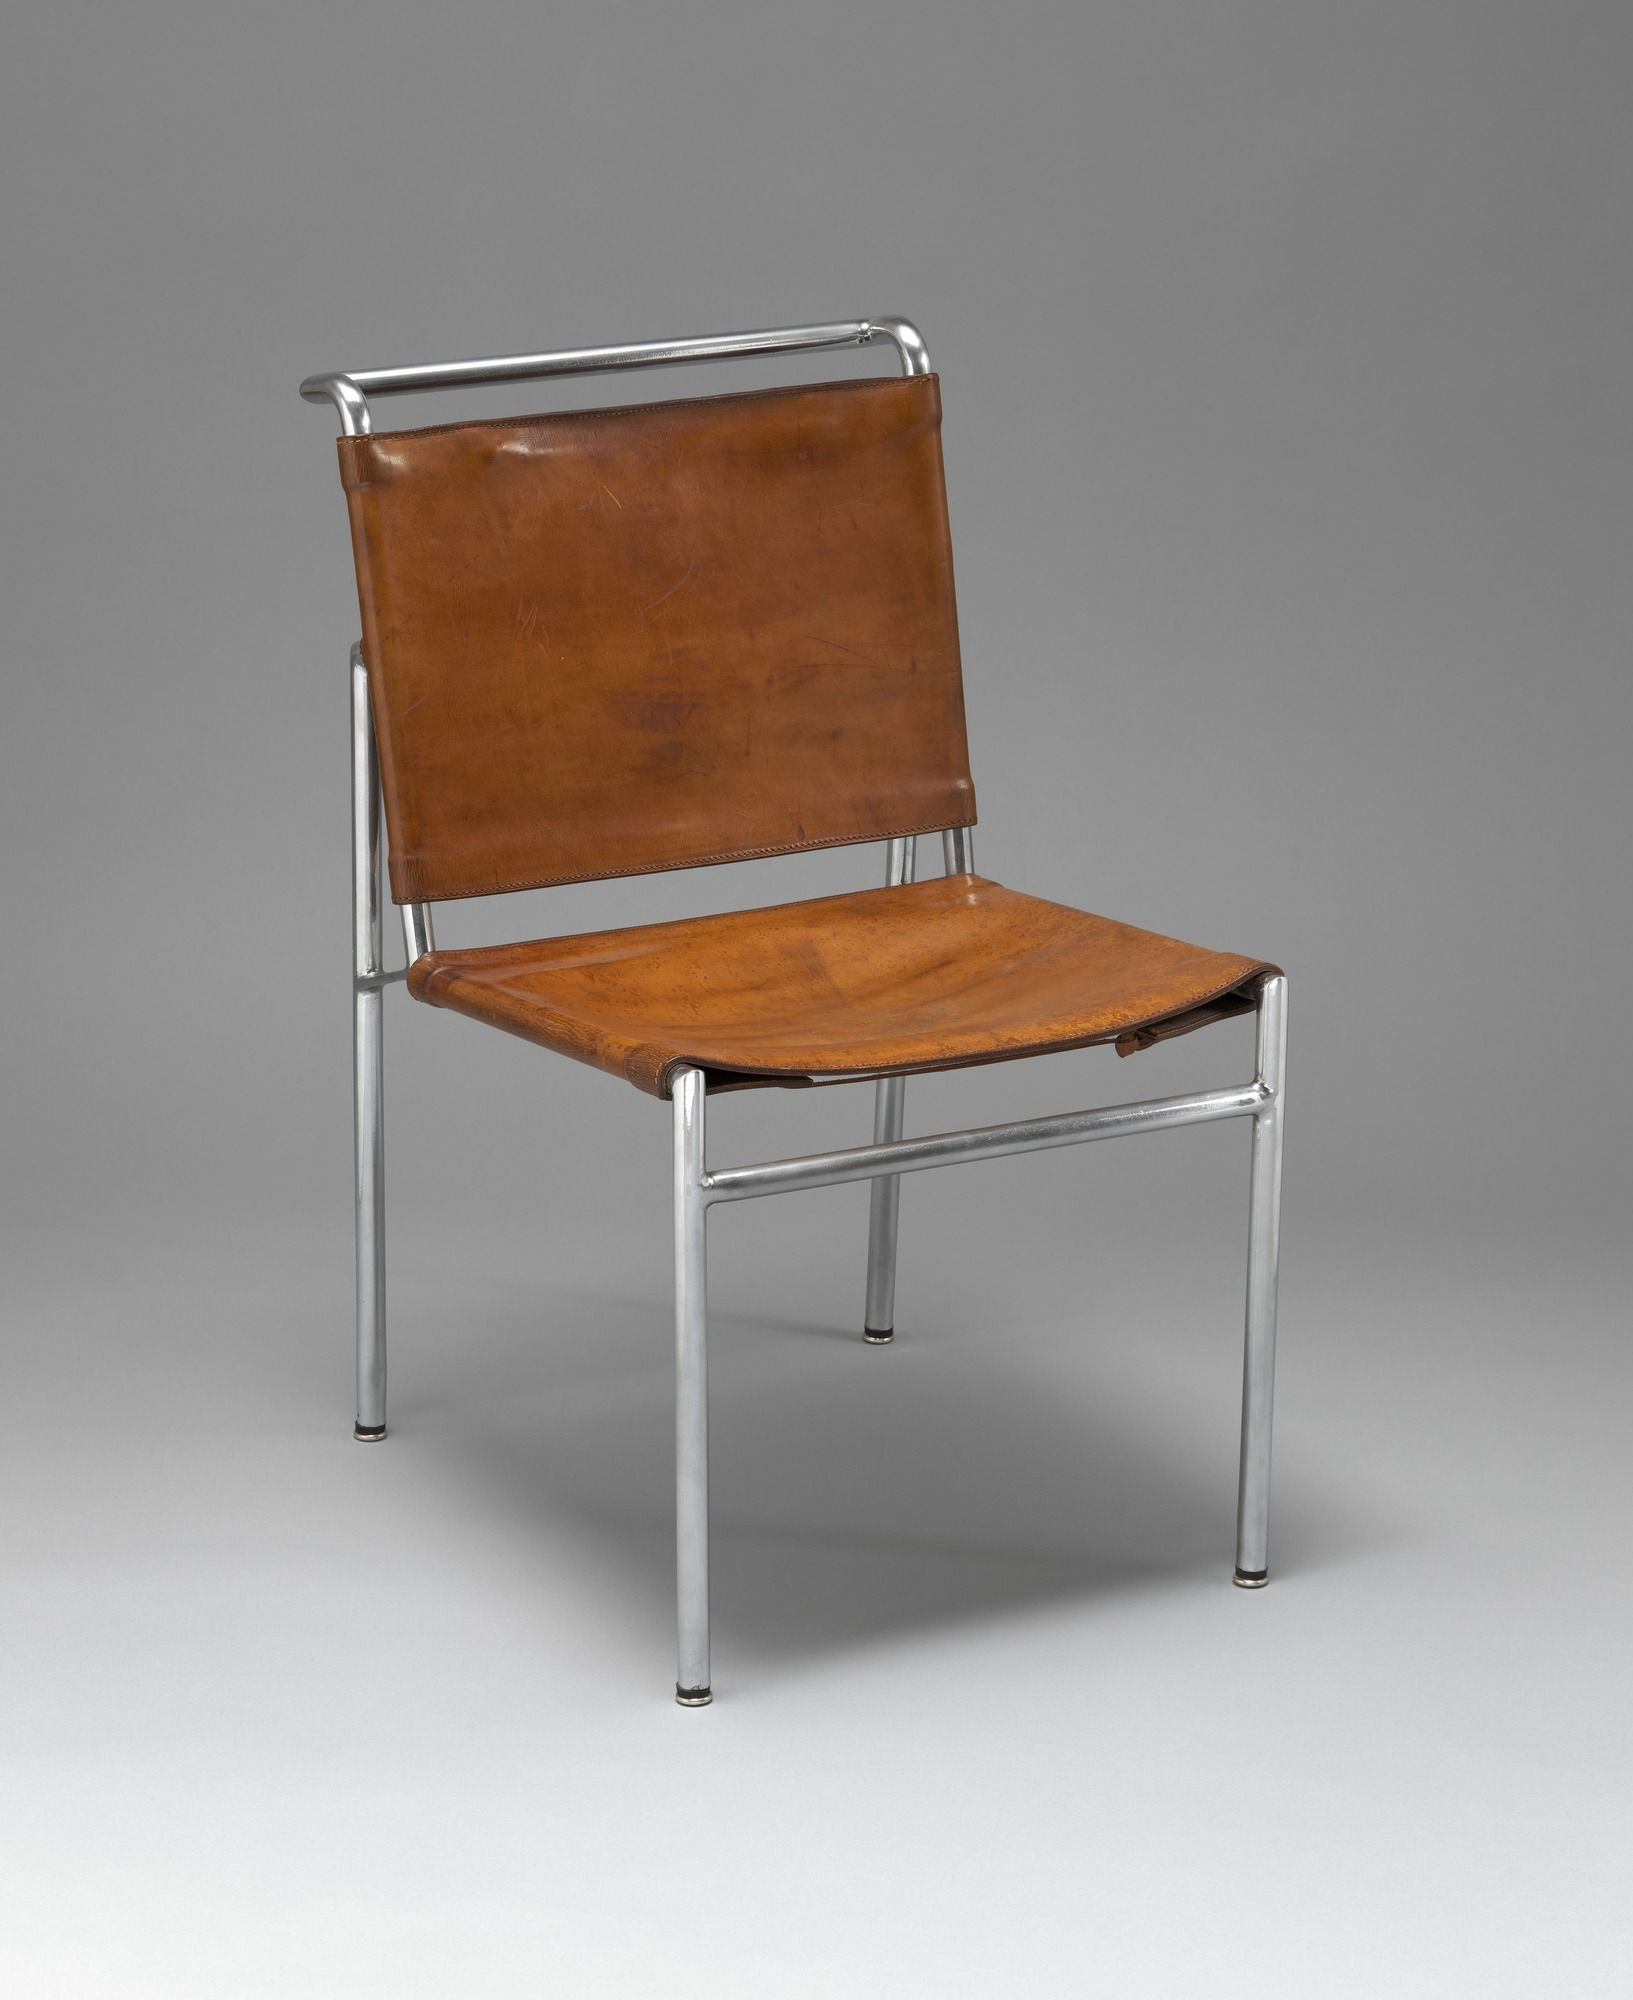 Eileen Gray Chair for the Villa Tempe a Pailla